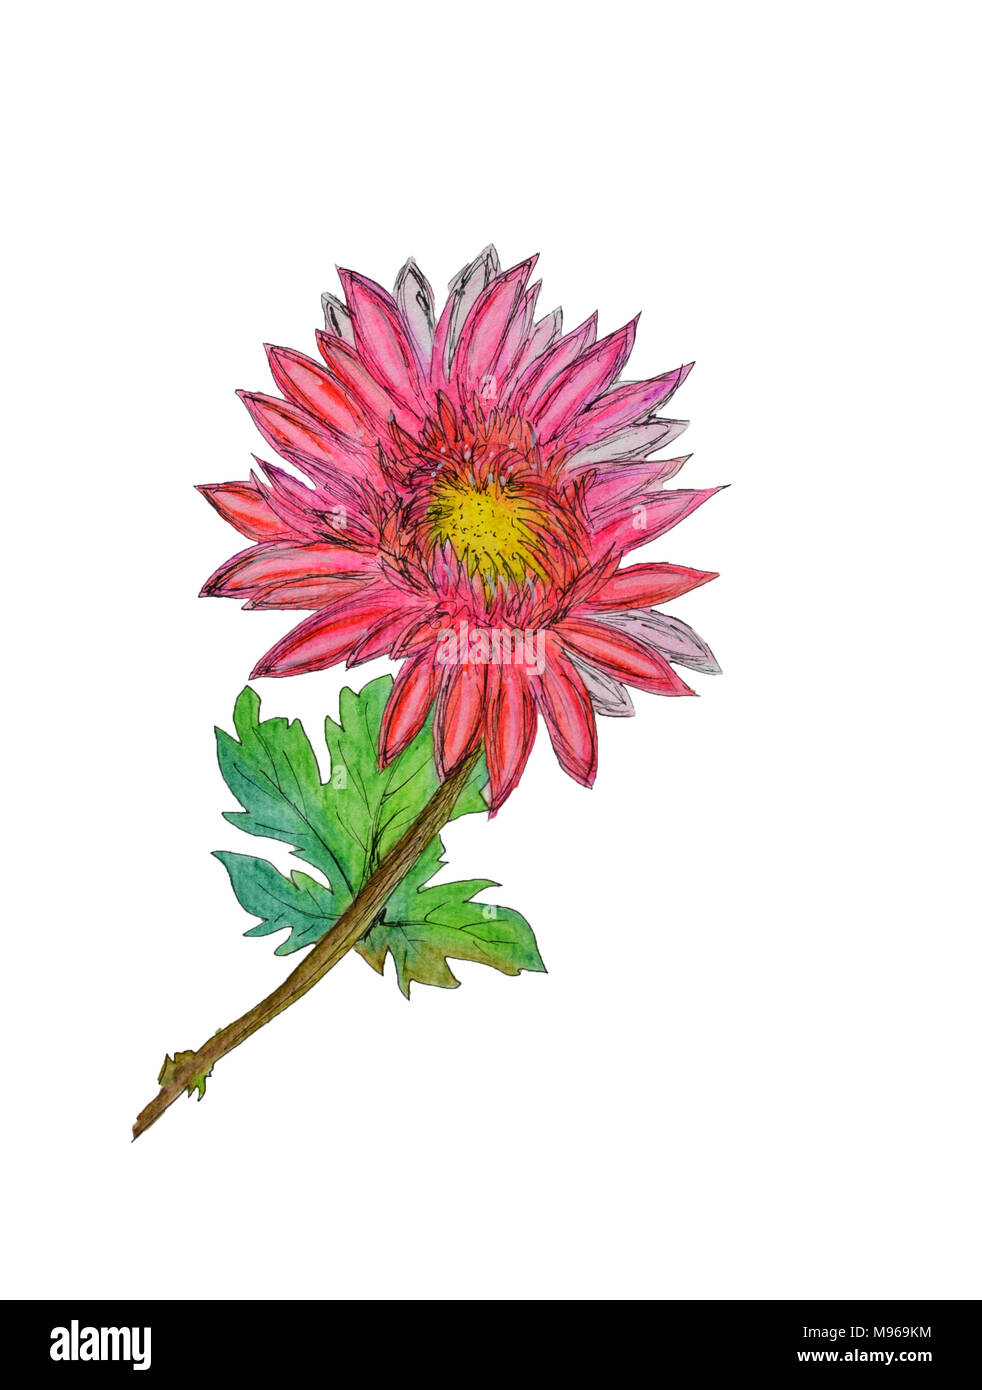 Watercolor Hand Painted Chrysanthemum Can Be Used As Background For